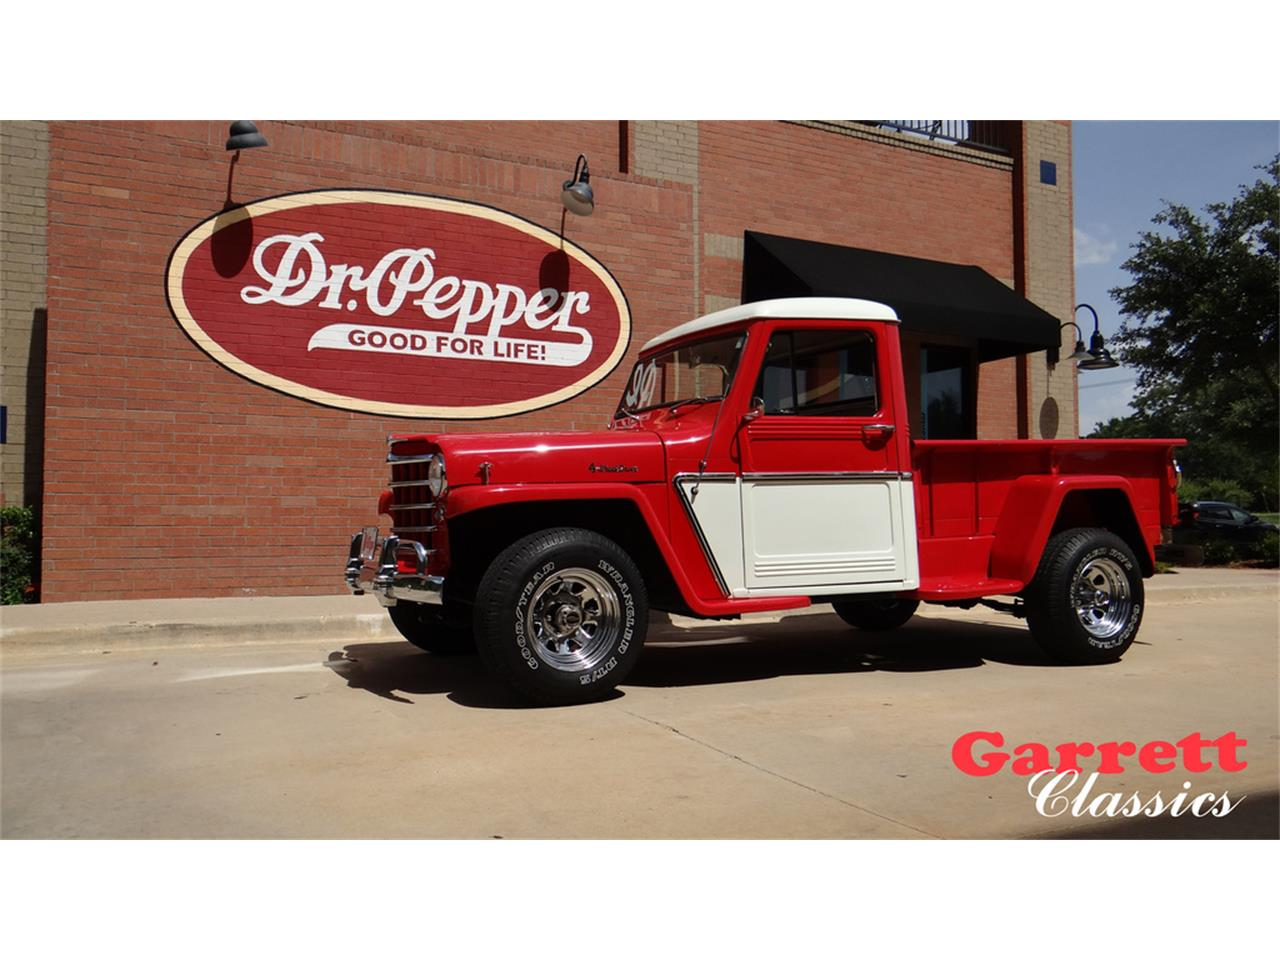 Willys Jeep Truck For Sale >> 1963 Willys Jeep For Sale In Lewisville Tx Classiccarsbay Com